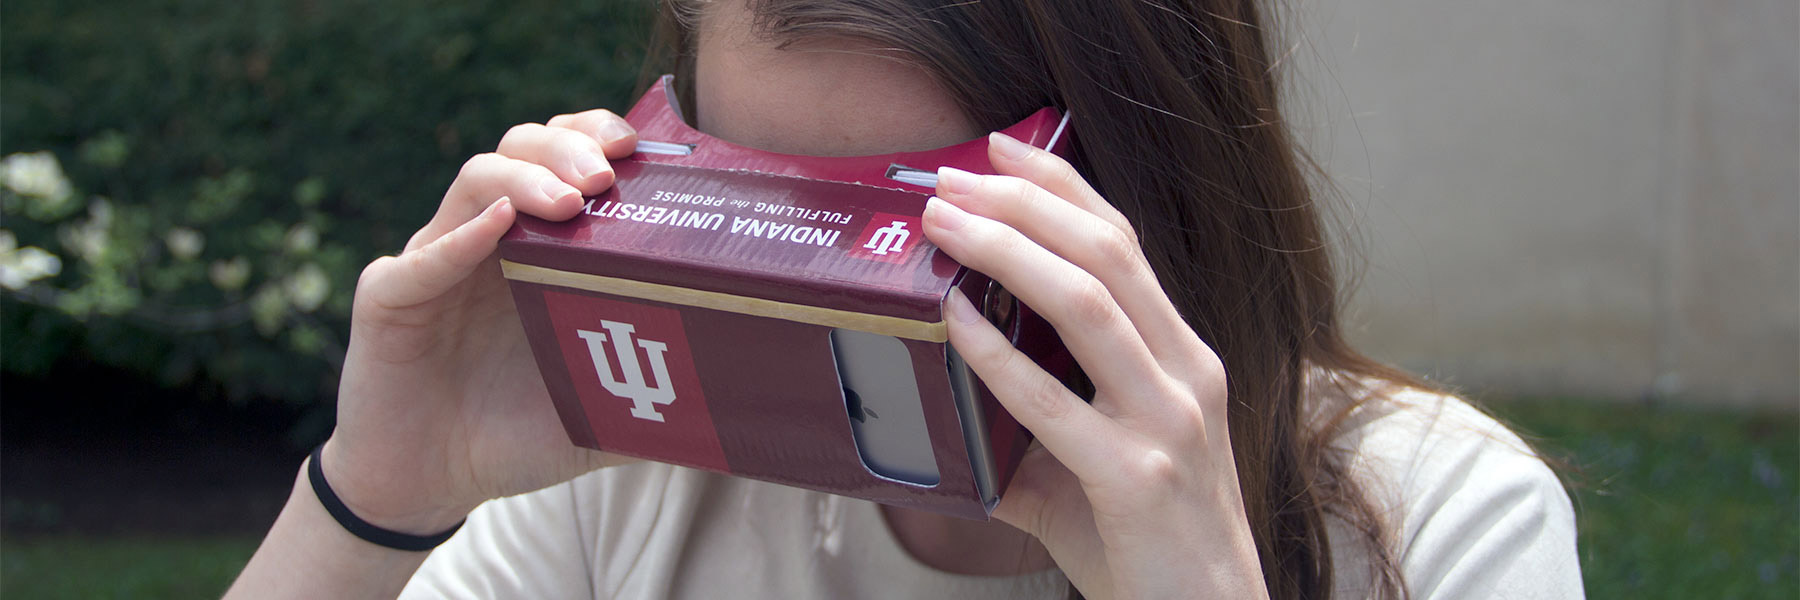 IU student viewing a IU virtual tour using a cardboard viewer.